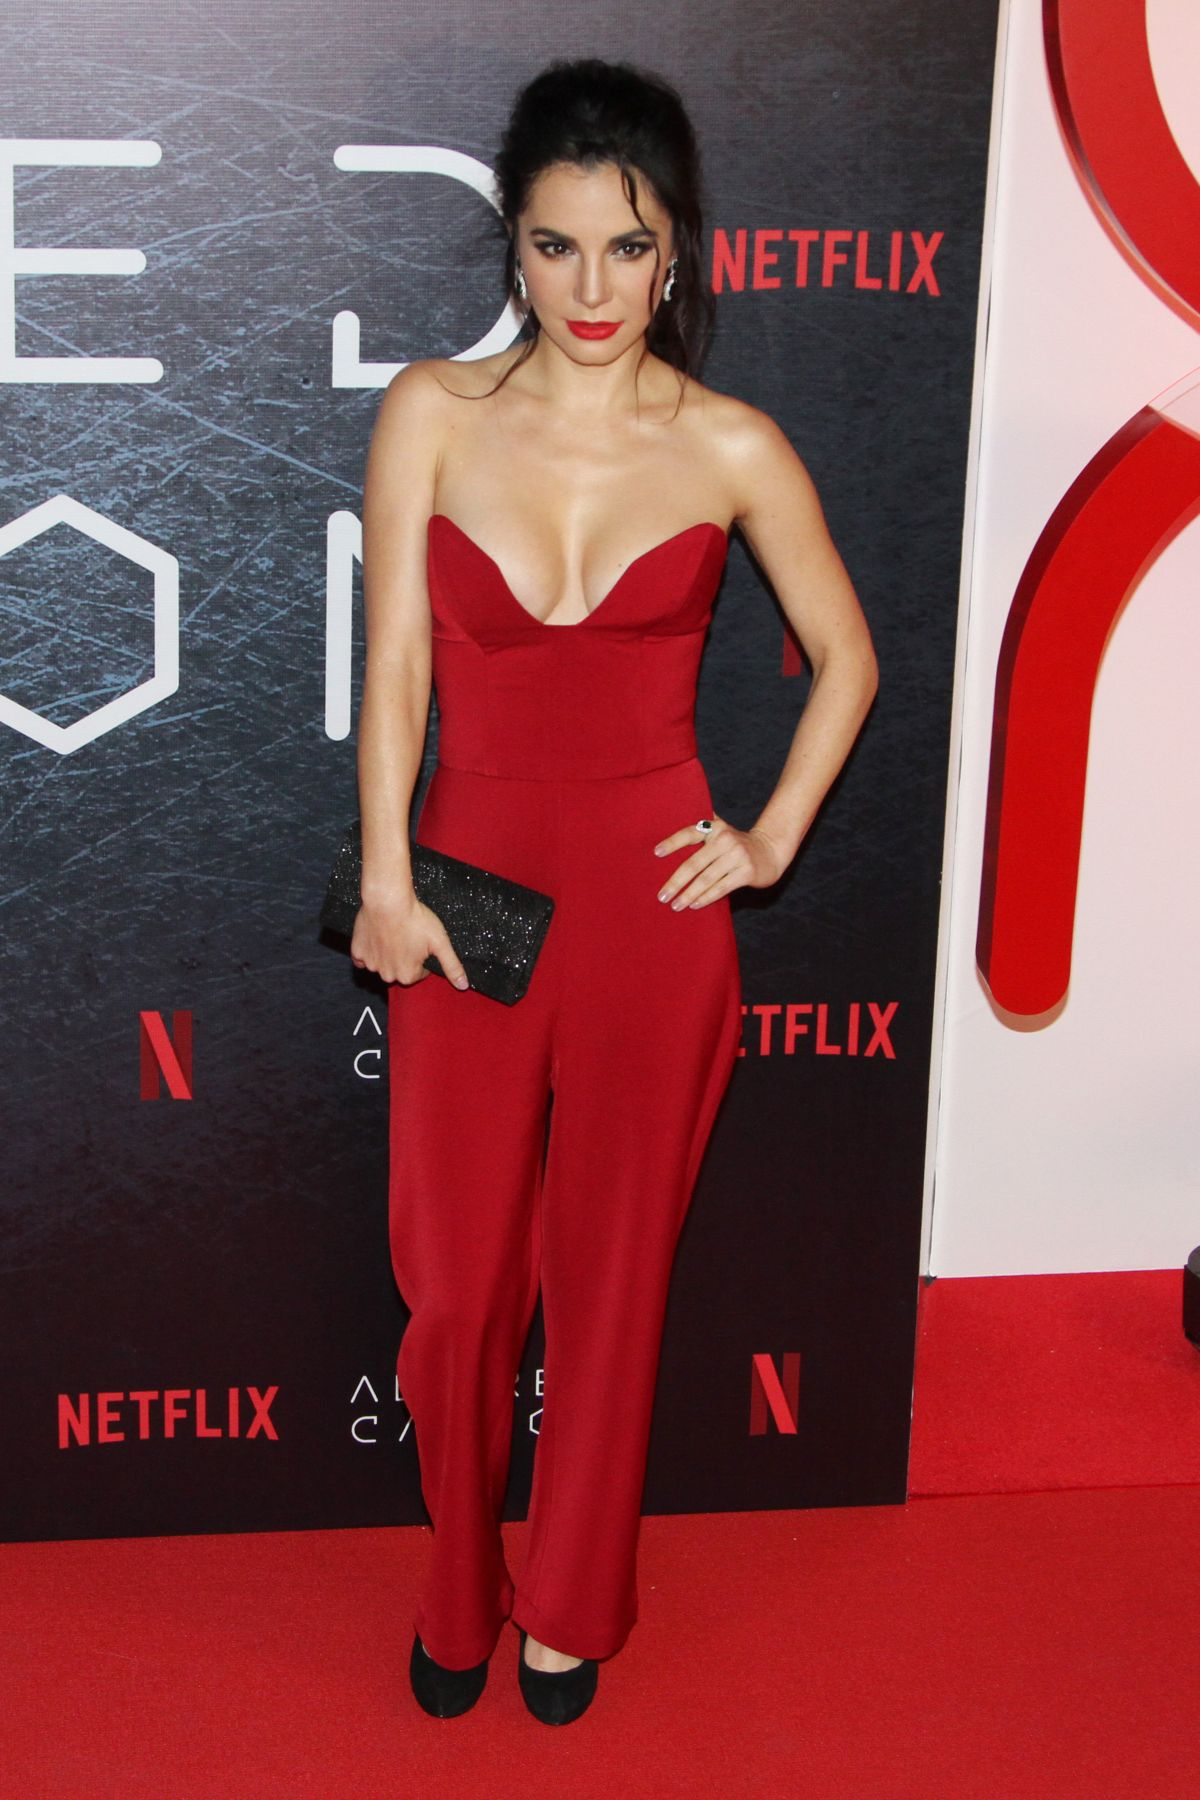 Martha Higareda At 'Altered Carbon' TV show photocall